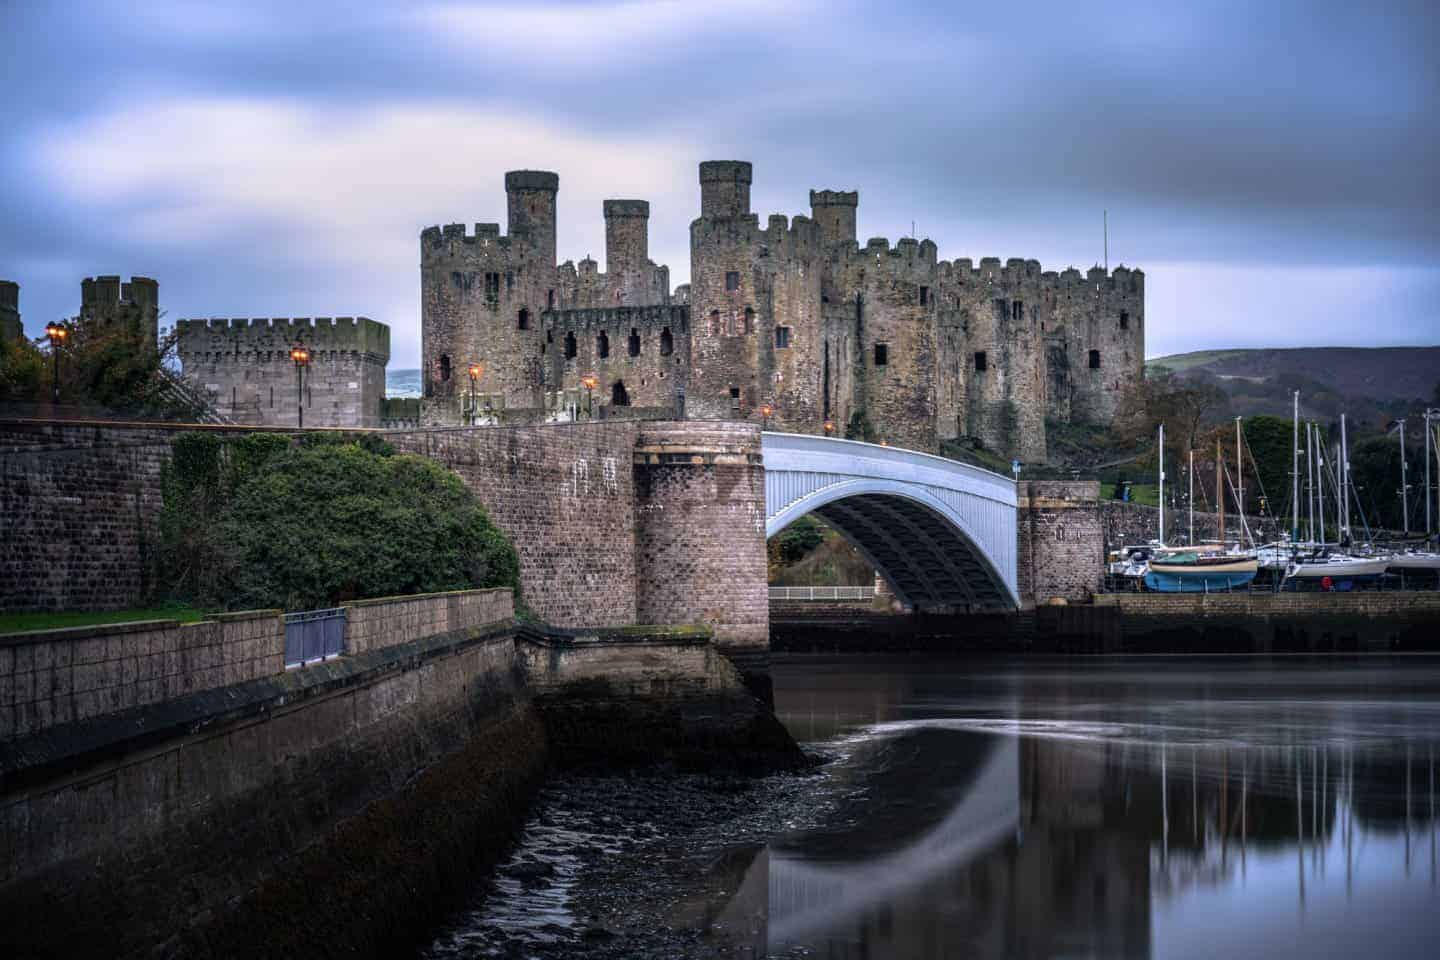 There are not many castles included in the Snowdonia photography locations, but Conwy Castle is worth the detour.